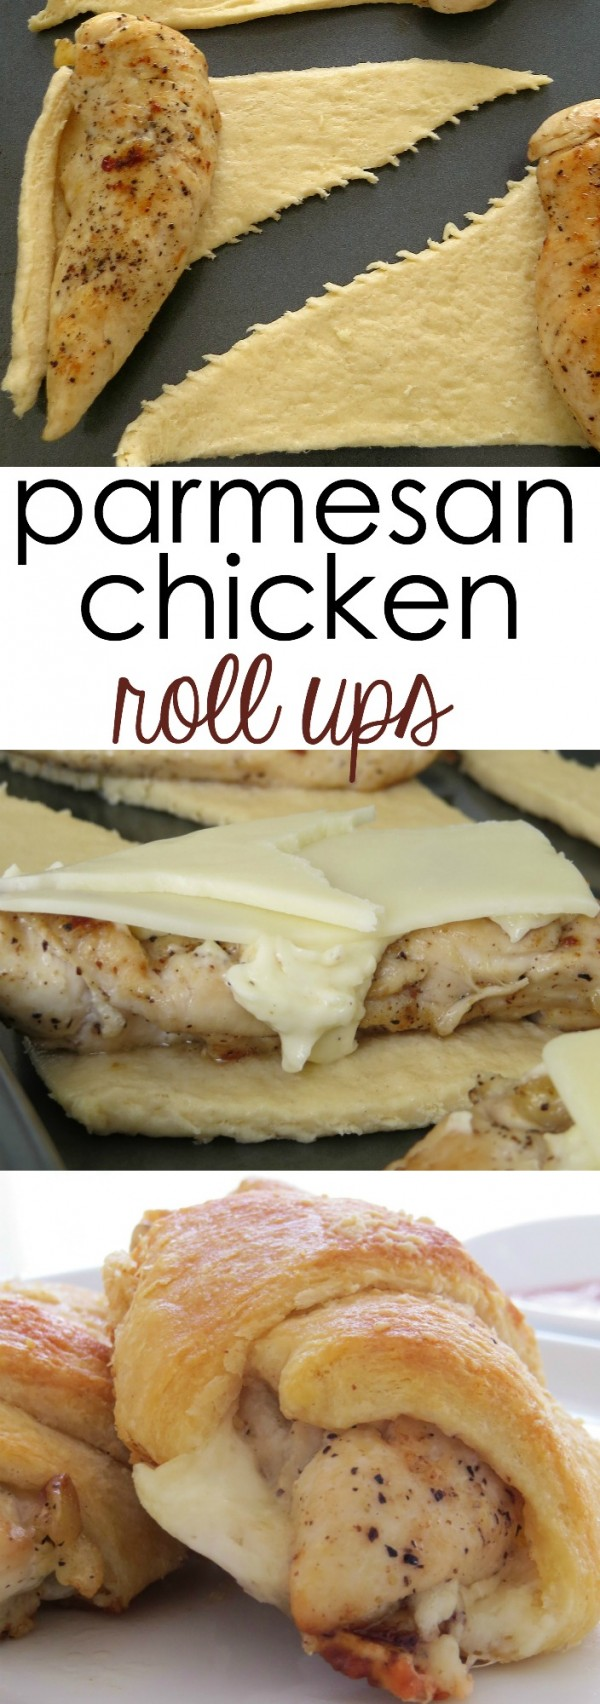 50 Best Chicken Recipes Ever - Get the recipe ♥ Parmesan Chicken Roll Ups @recipes_to_go